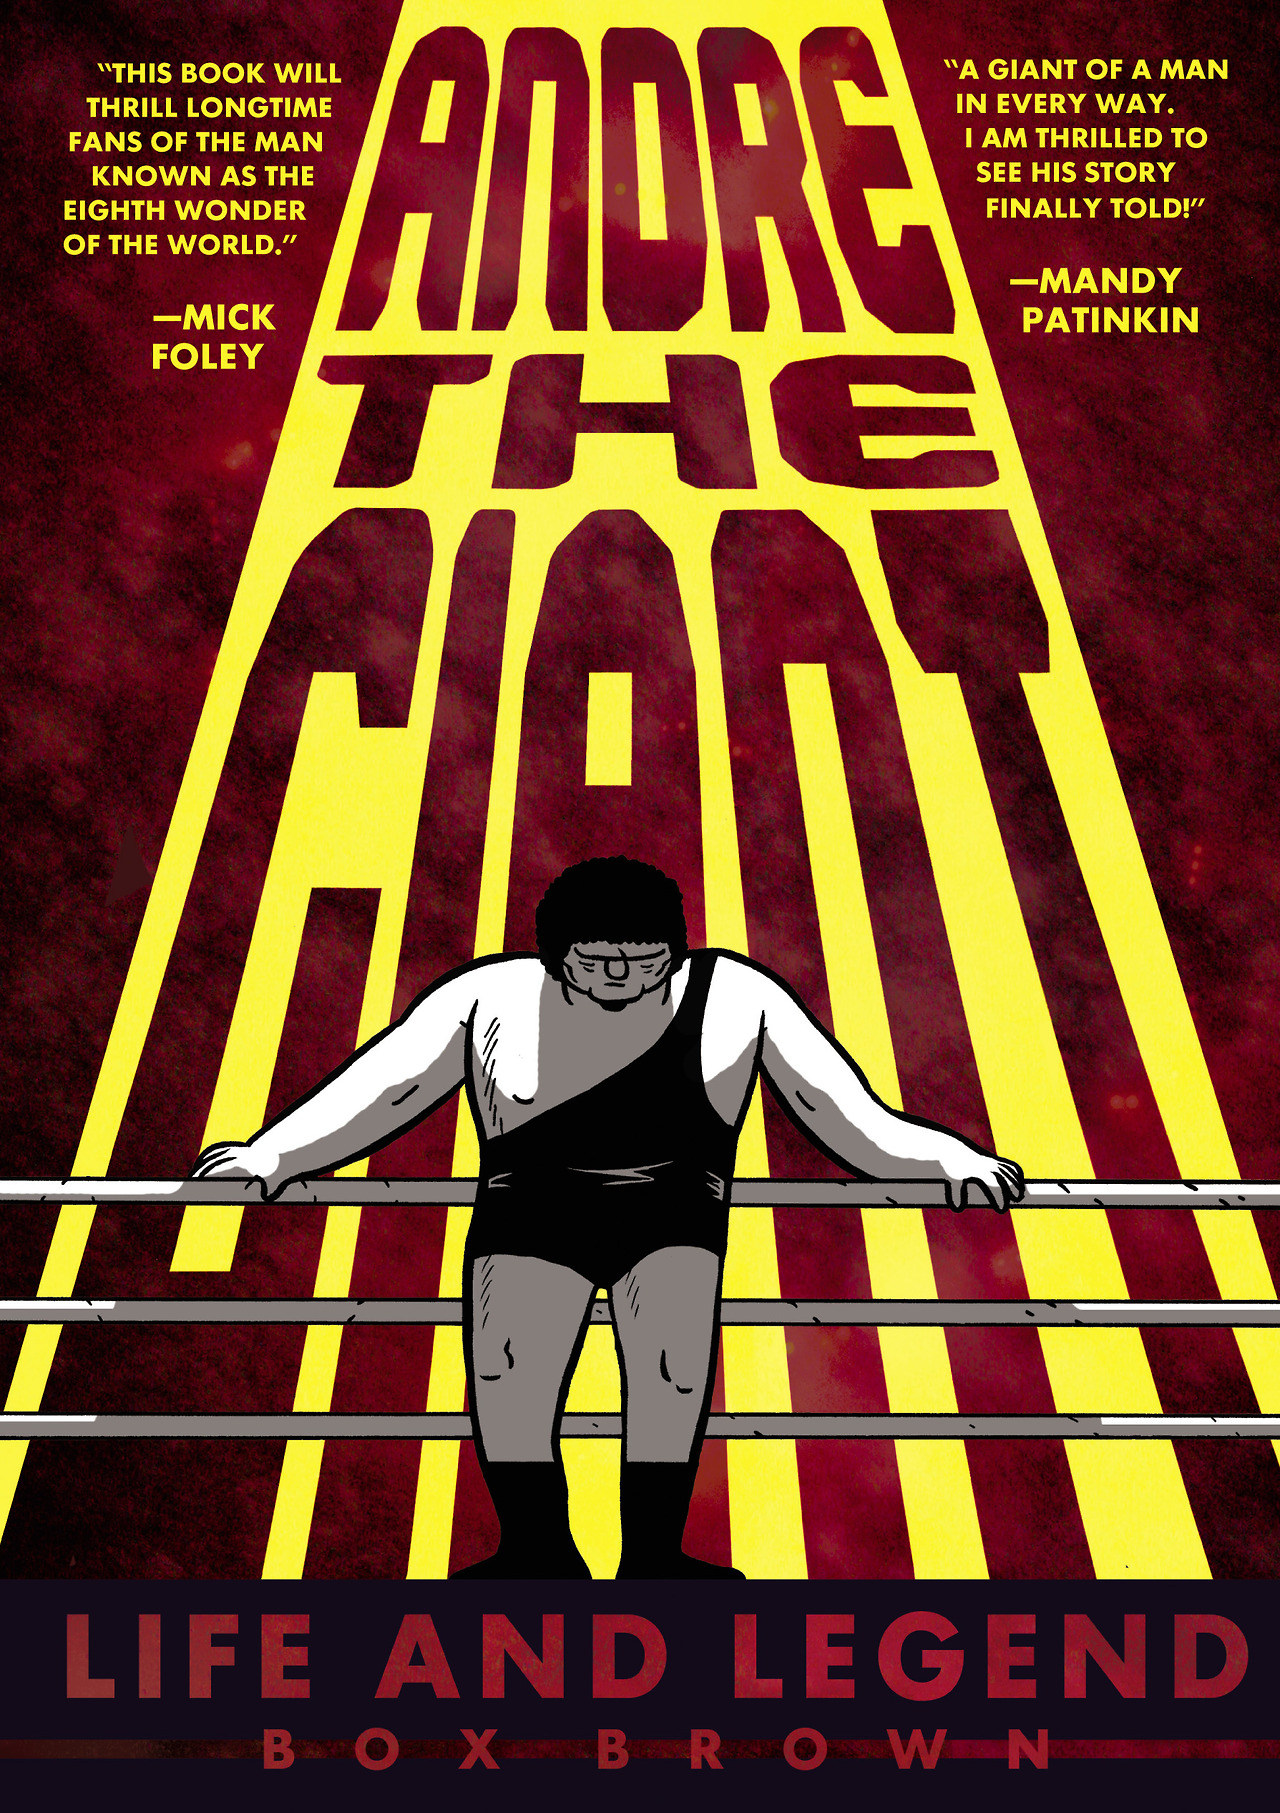 firstsecondbooks: Happy Book Birthday to Box Brown's wonderful graphic novel biography, Andre the Giant. This book is going to knock your socks off, you guys. This book is so good and made me descend into a spiral of wrestling youtube videos.